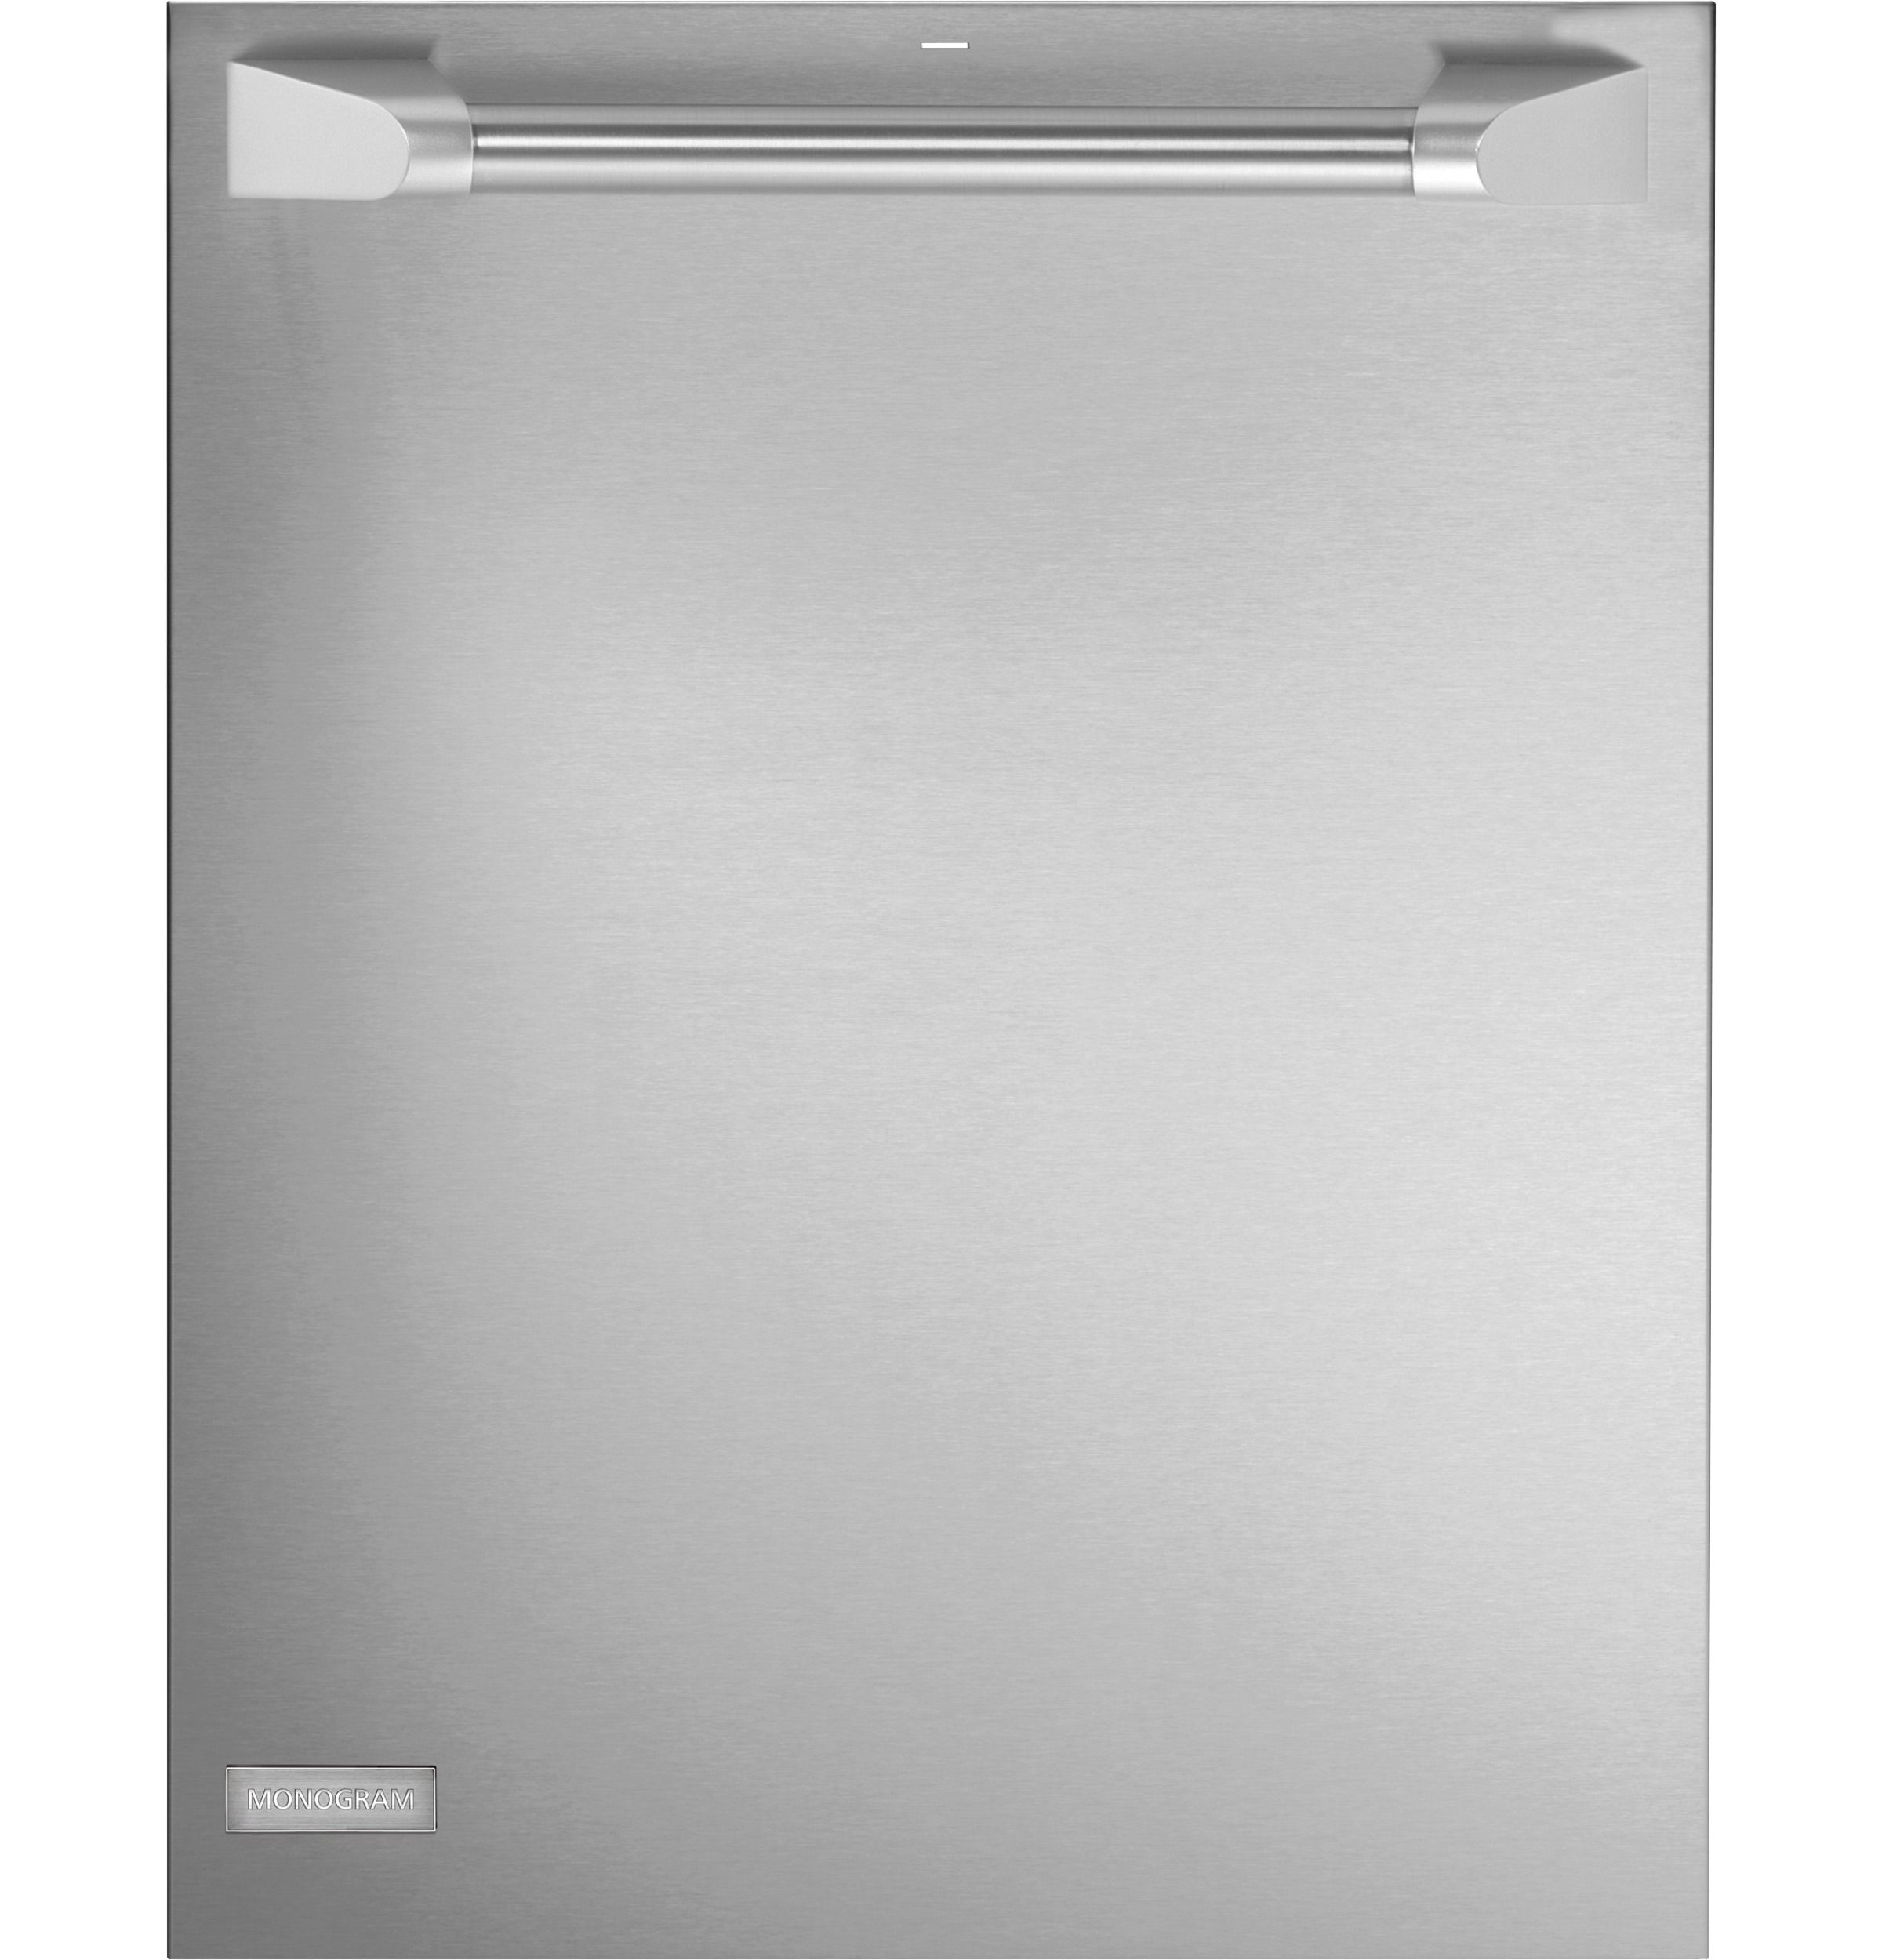 Zdt870spfss Monogram 174 Fully Integrated Dishwasher The